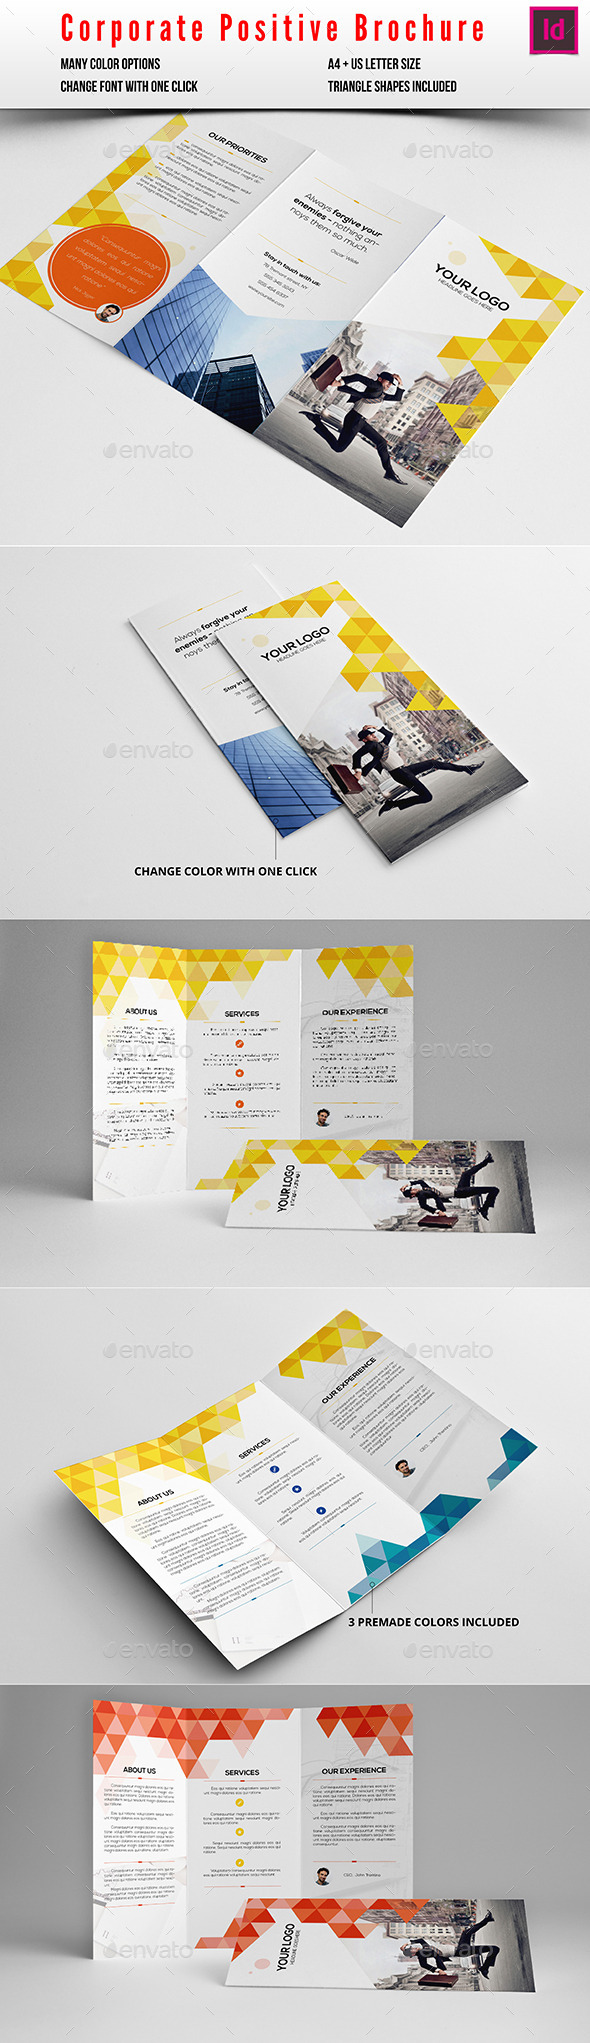 GraphicRiver Corporate Positive Brochure 10229347